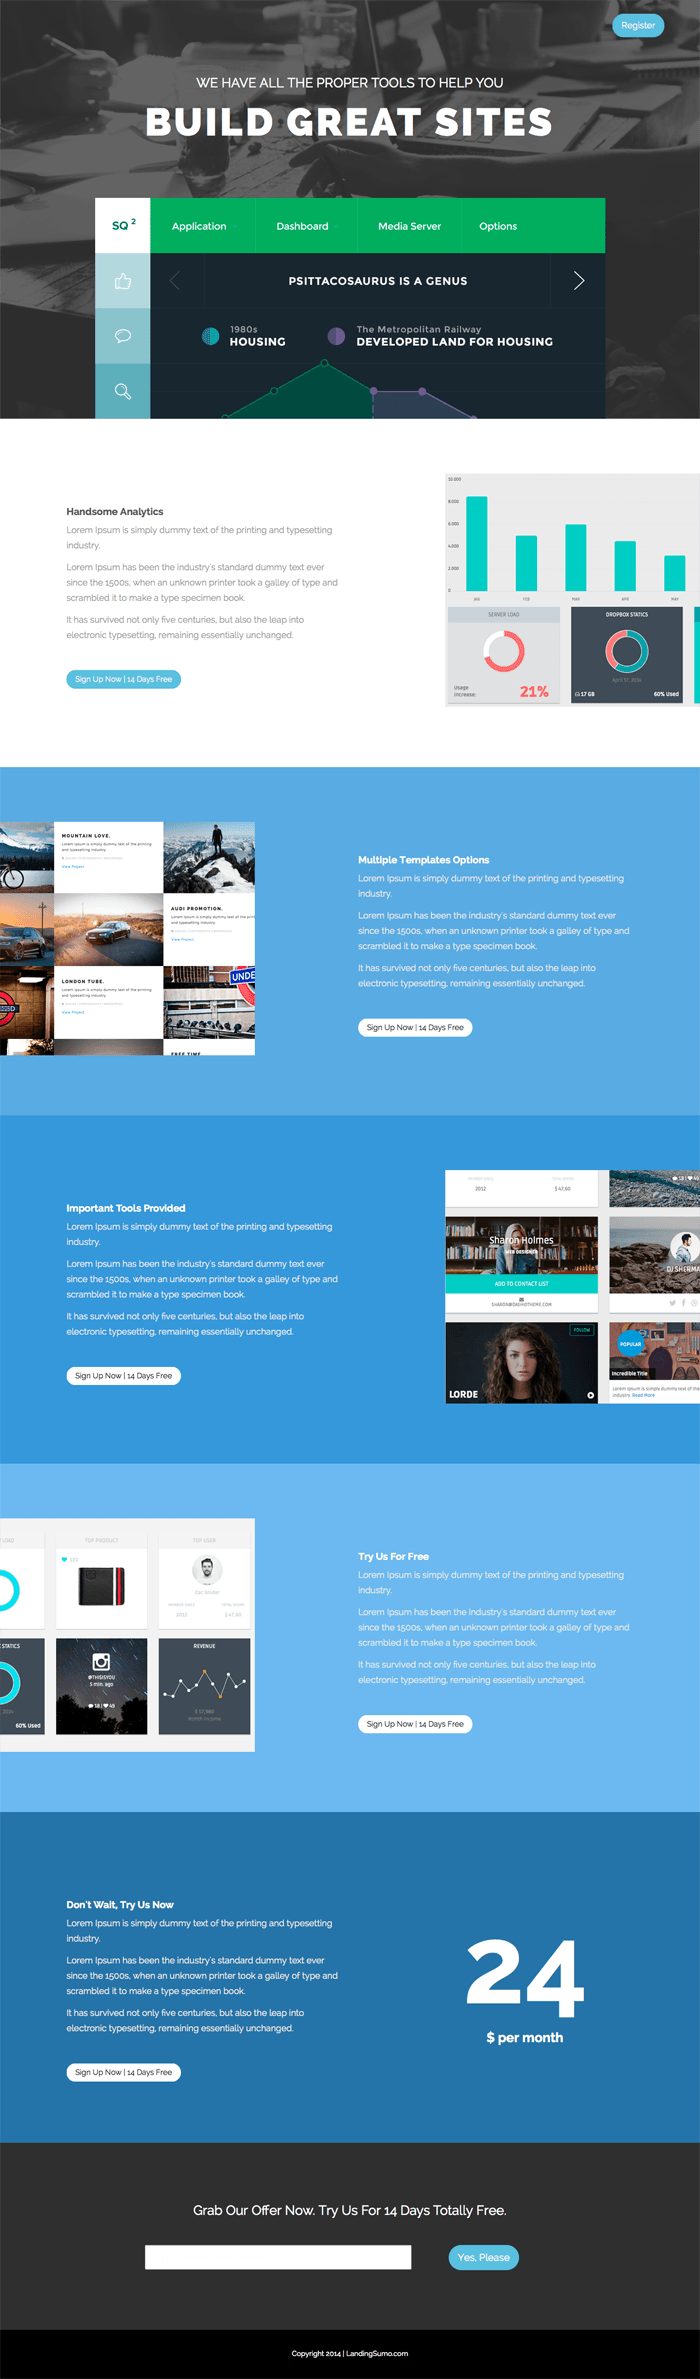 SumoLanding Bootstrap Landing Page Template (With images